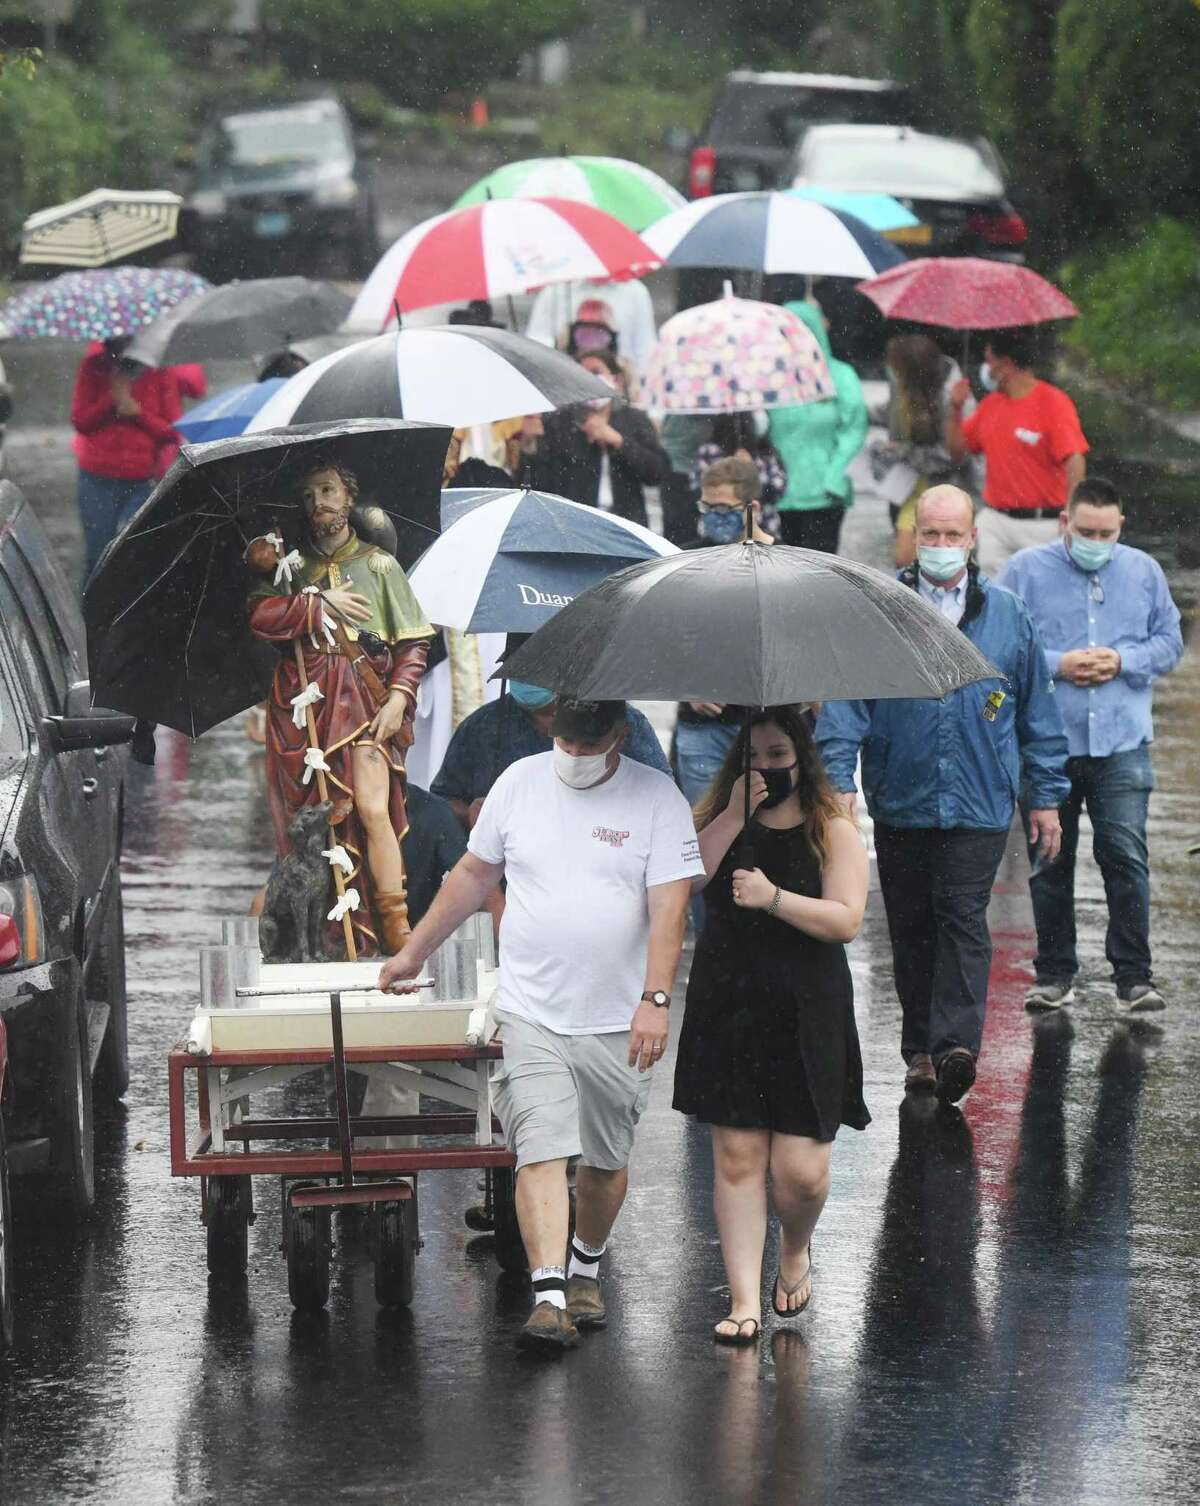 Led by Cos Cob's Carmine Raiente and his daughter, Kaitlyn Raiente, 13, the statue of St. Roch is wheeled through the street during the annual St. Roch Church procession in the Chickahominy section of Greenwich, Conn. Sunday, Aug. 16, 2020. The traditional St. Roch Feast street festival and carnival was cancelled this year due to coronavirus concerns, but the procession through the streets continued in a modified fashion. Despite rain, a couple dozen congregants marched with the statue of St. Roch - coincidentally, the patron saint of infectious disease.